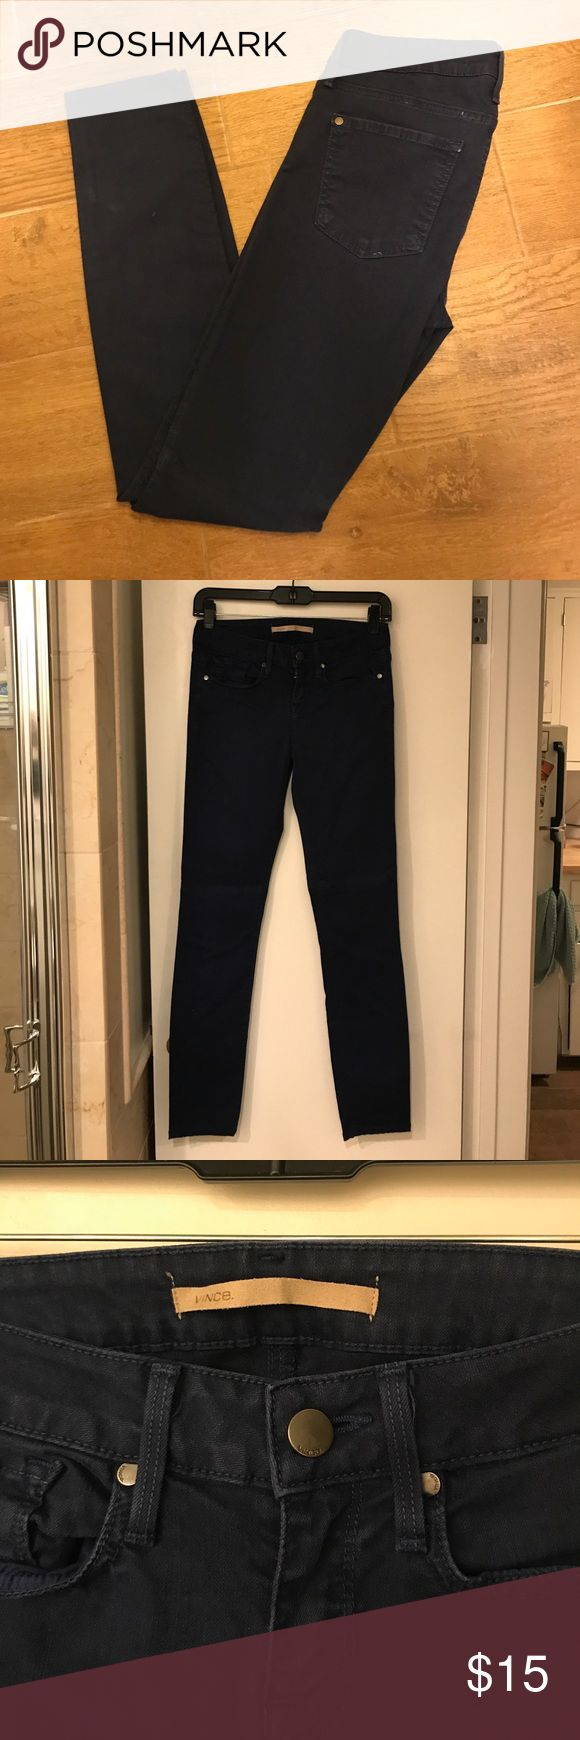 Vince blue skinny pants Vince skinny artic blue, 5 pocket skinny pant! Style: DV133-2052. Great blue, different than a basic denim wash. They have a little piece of thread pulled on the back. Pricing these to sell, I'm moving so I'm cleaning out the closet!! Vince Jeans Skinny